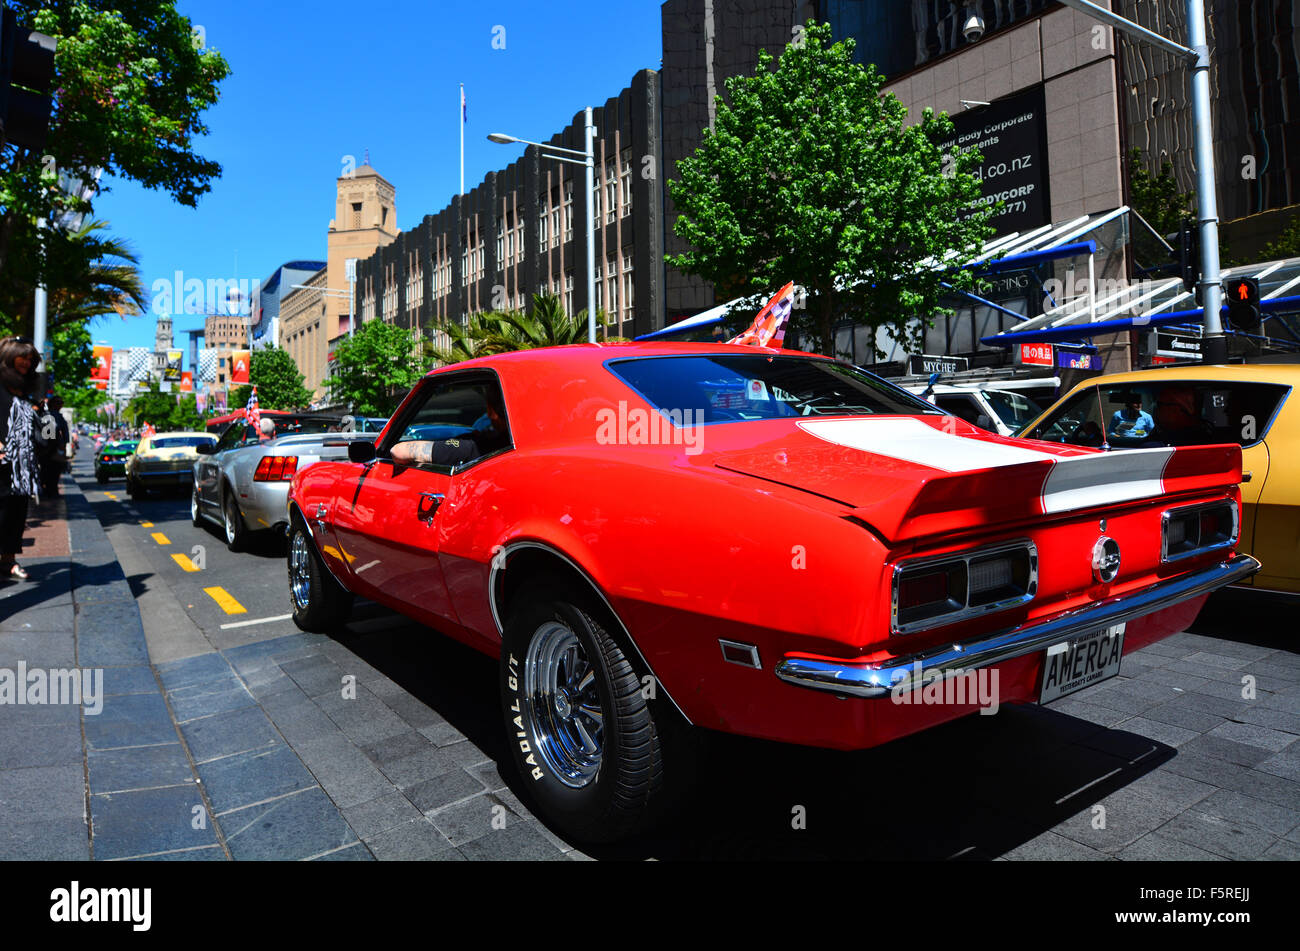 Classic Muscle Car Stock Photos & Classic Muscle Car Stock Images ...